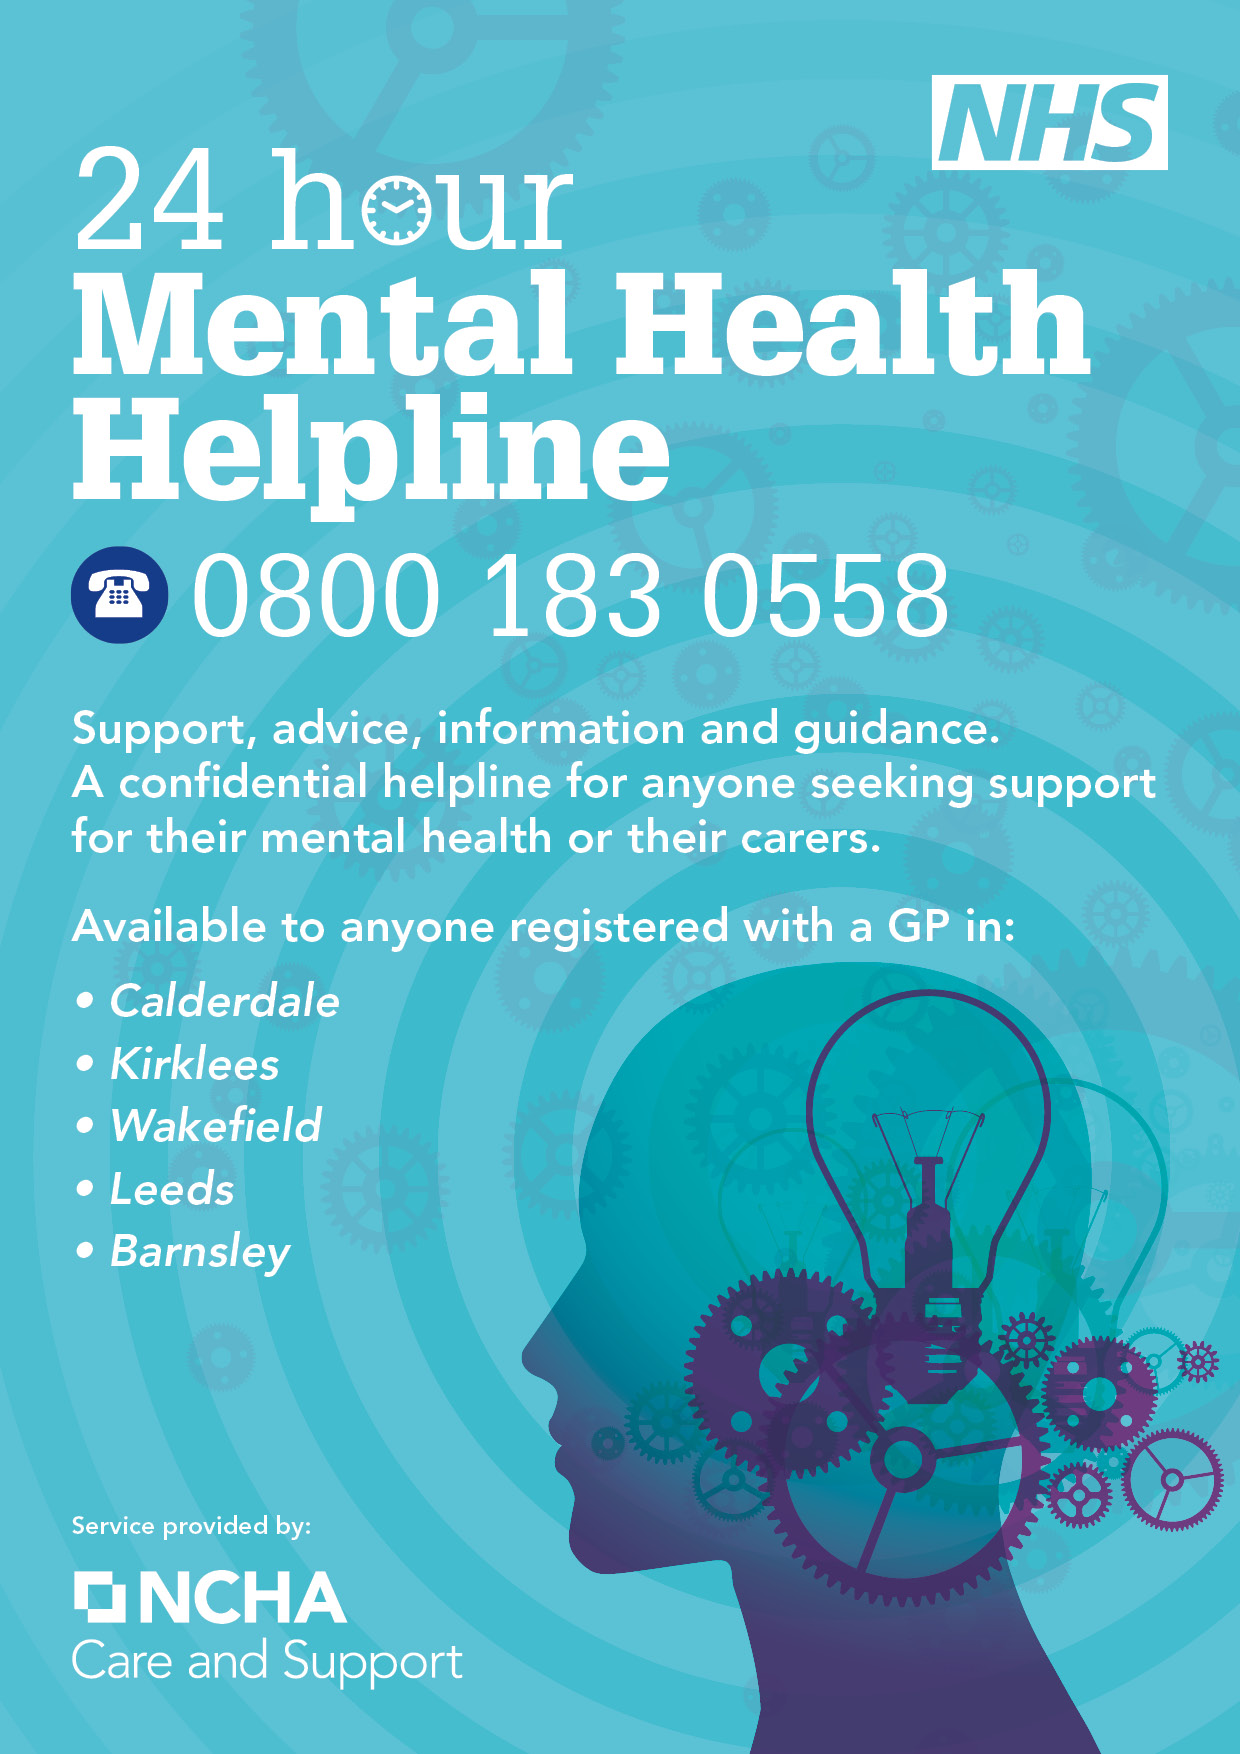 picture of a poster with the number 0800 183 0558 for the mental health helpline